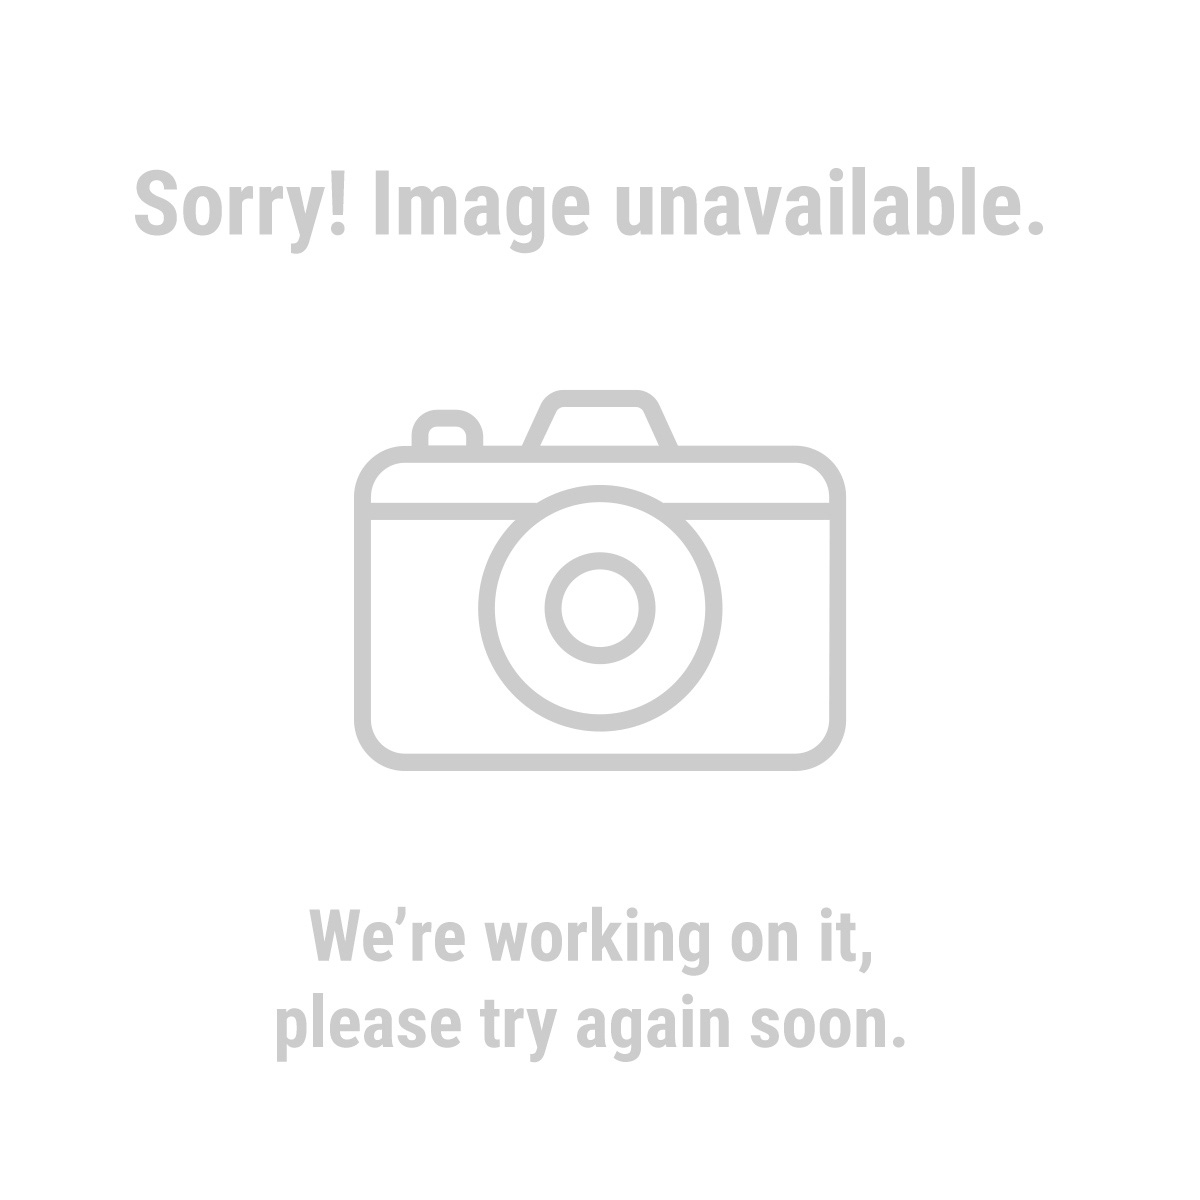 "Pittsburgh® 97891 11-1/2"" Super Power Snips - Straight"